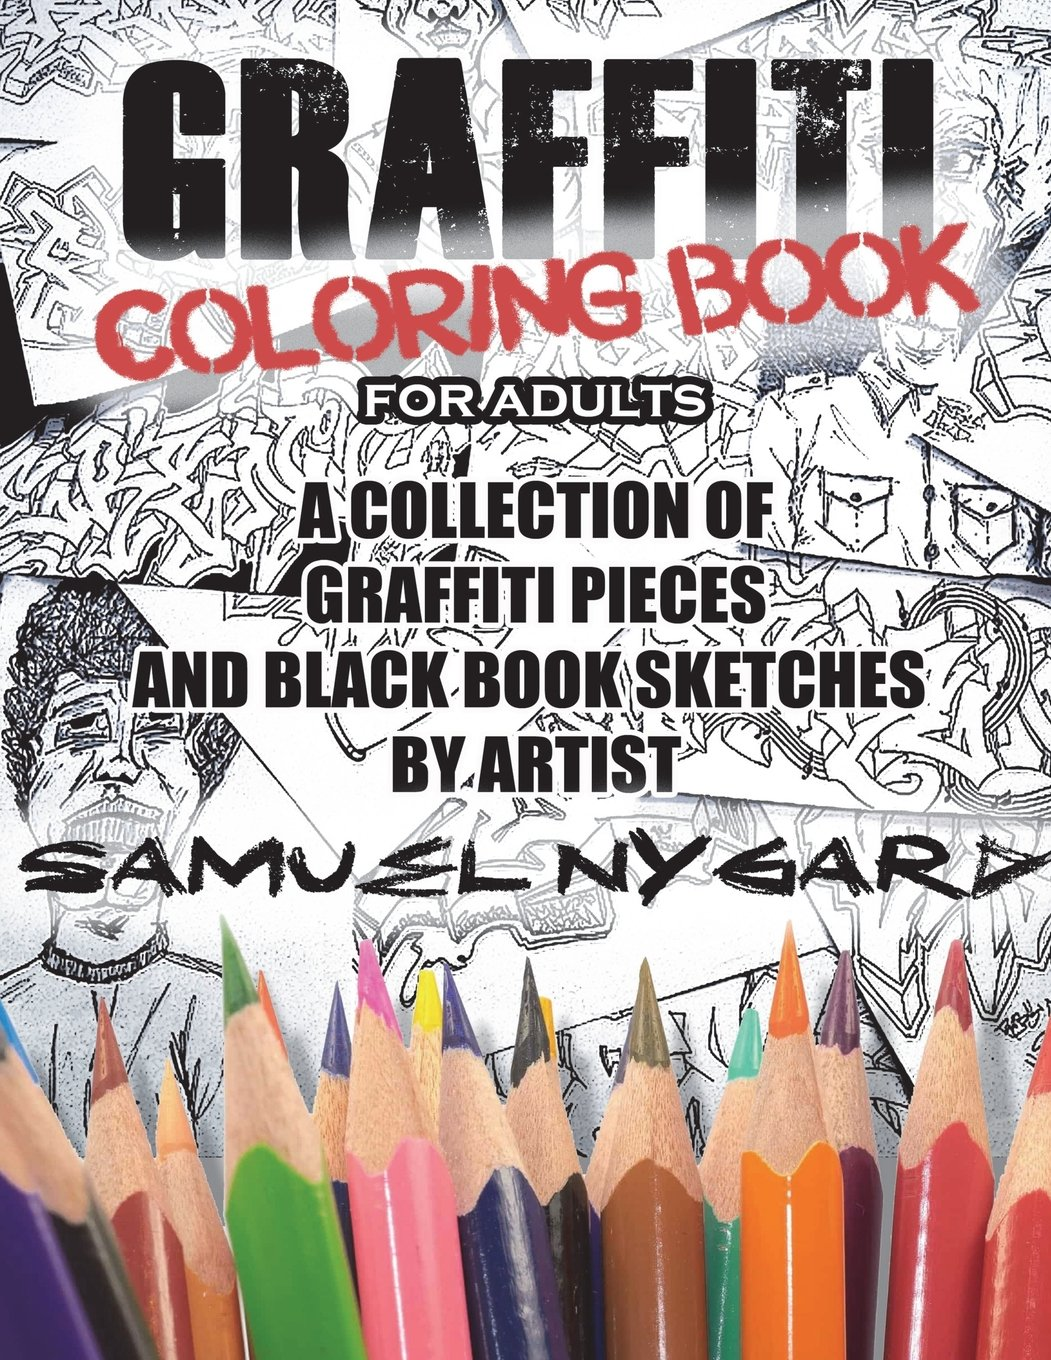 Read Online Graffiti Coloring Book For Adults: A Collection of Graffiti Pieces and Black Book Sketches by Artist Samuel Nygard pdf epub